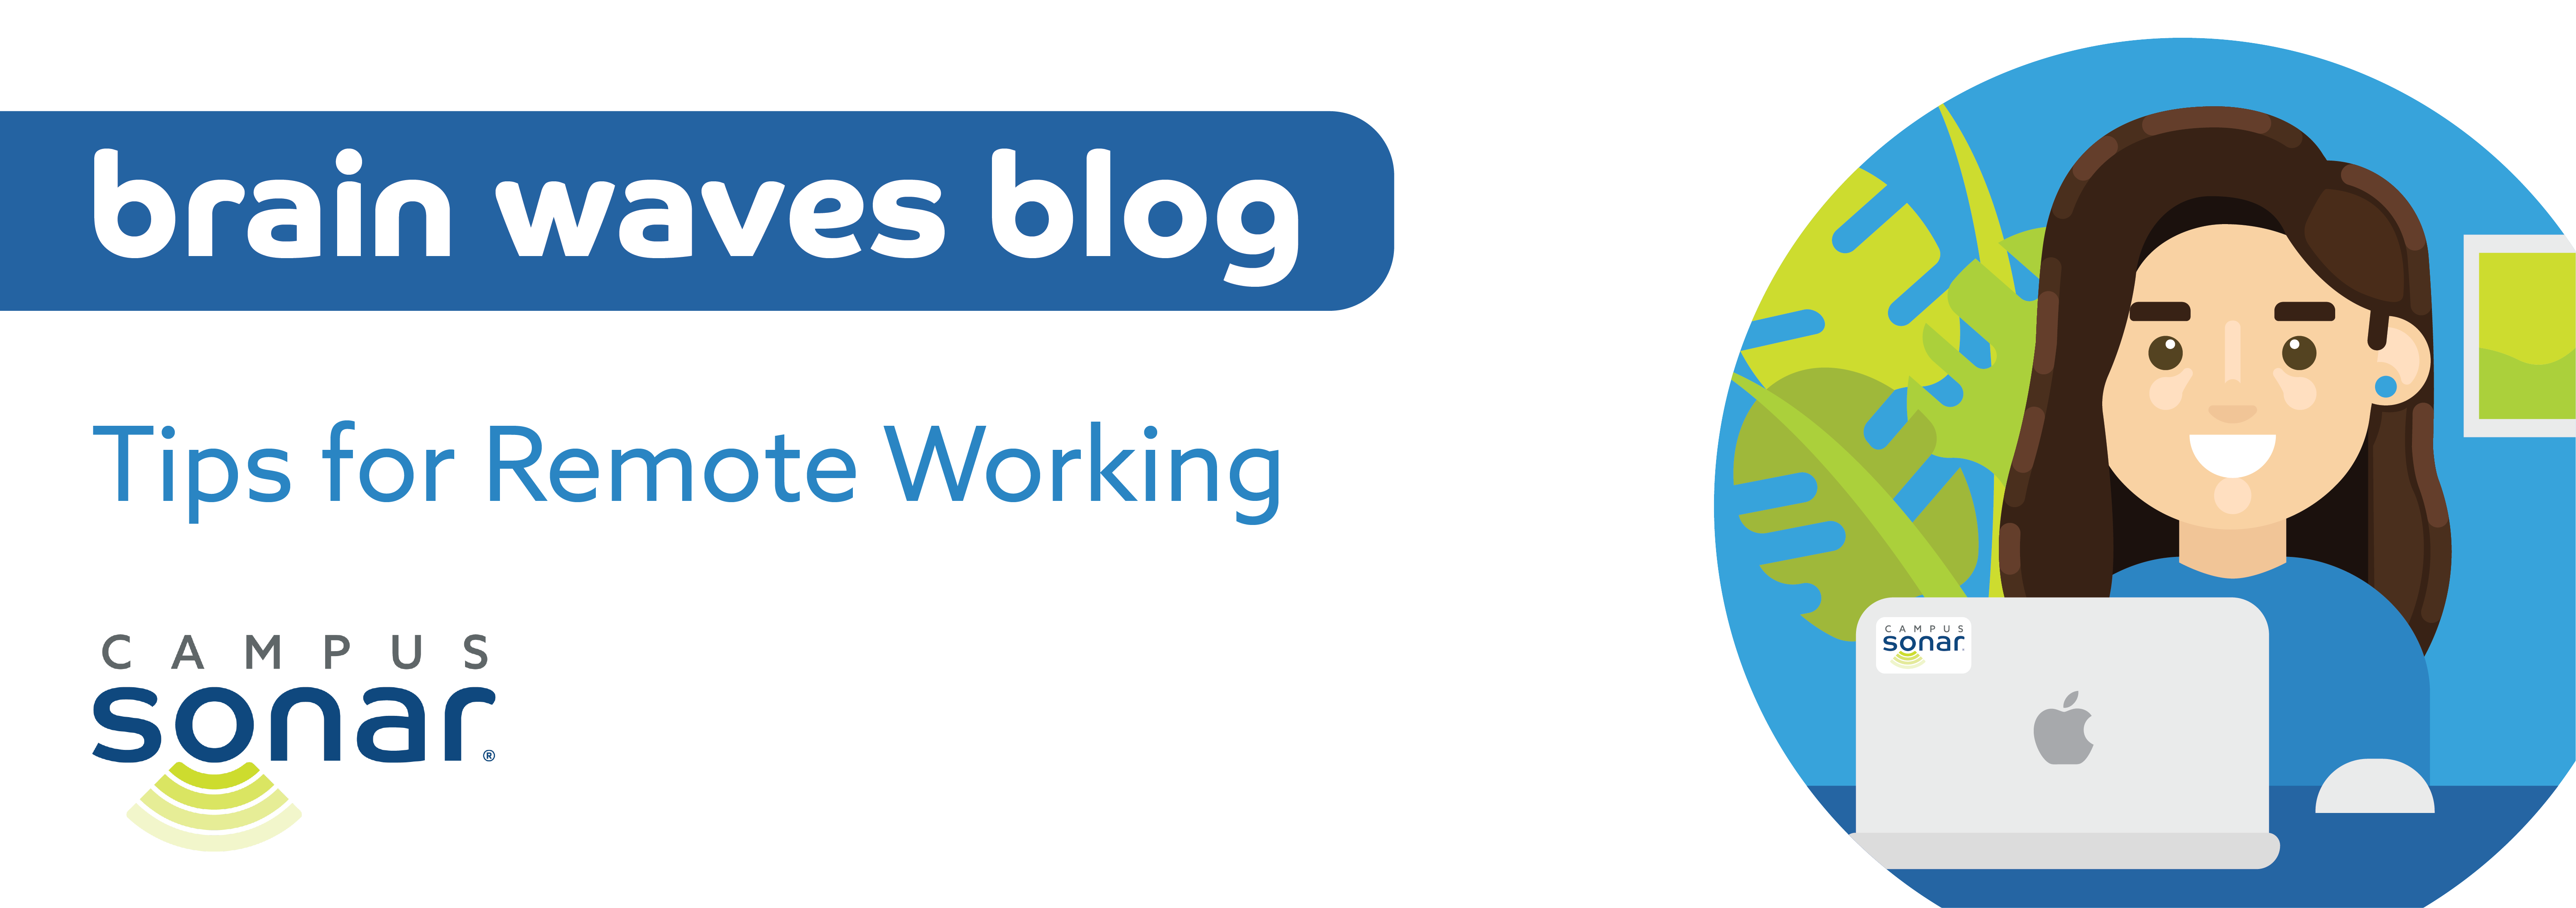 Blog image for Tips for Remote Working